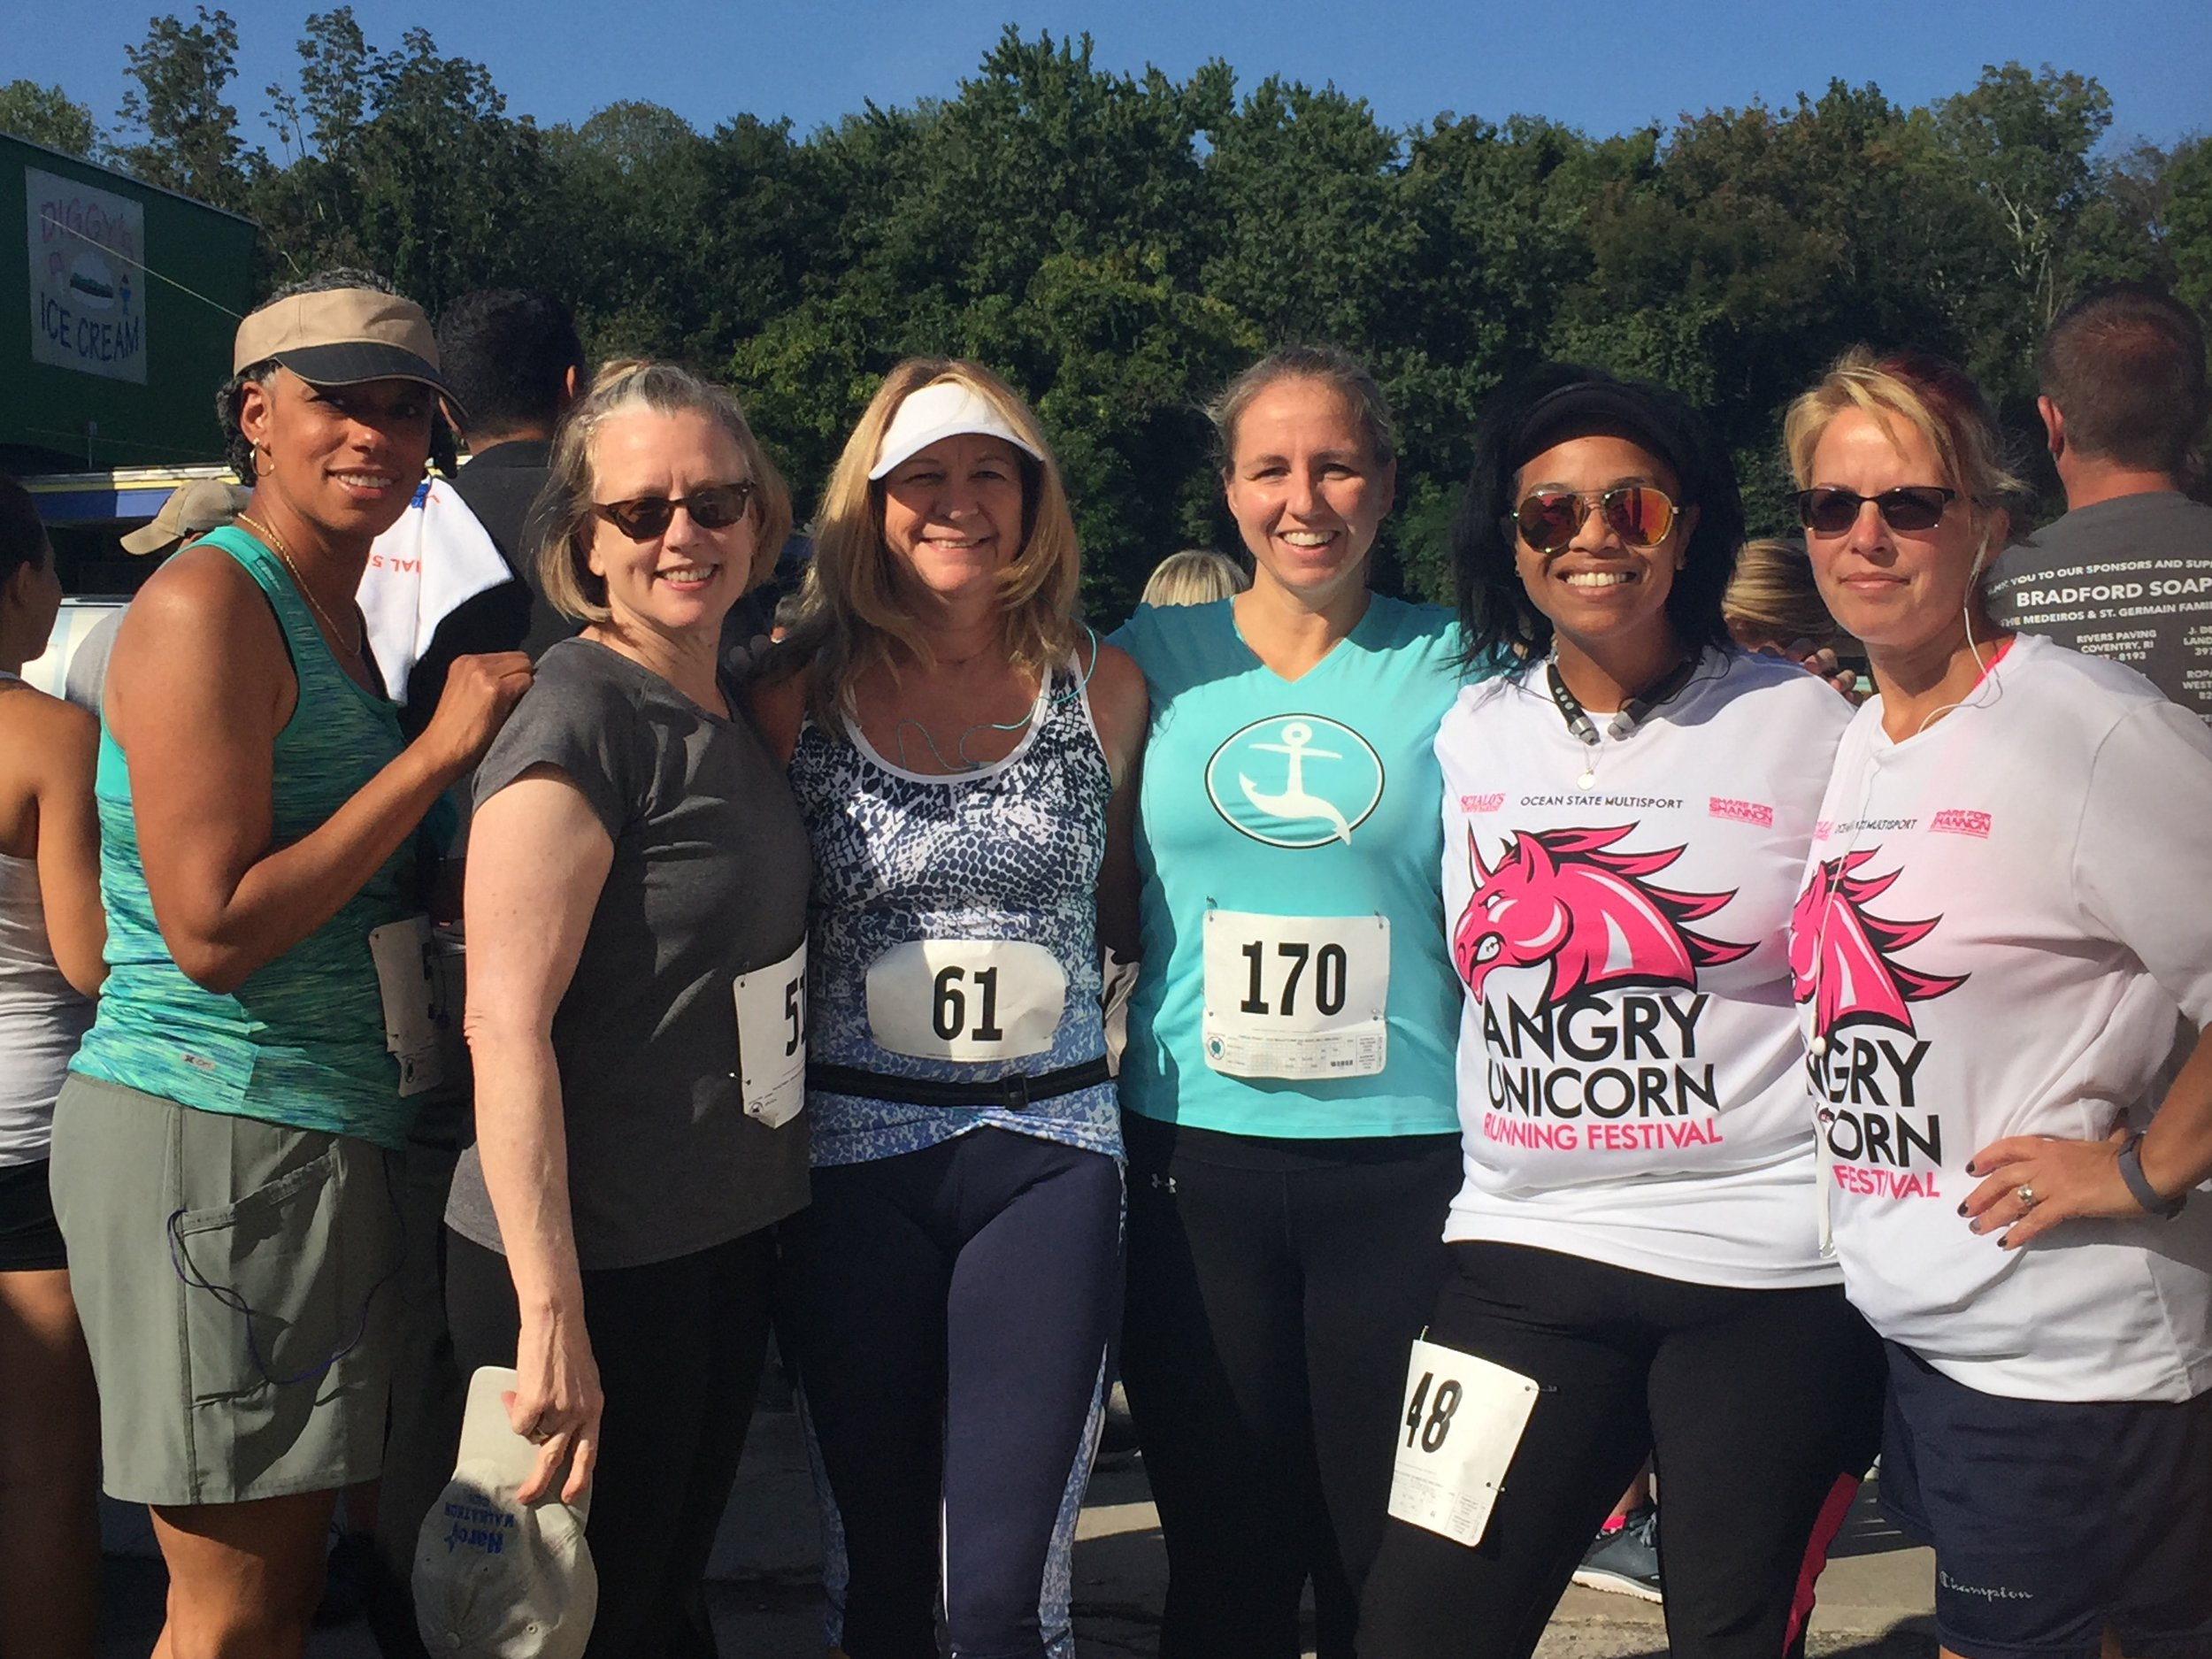 Labor Day 5k in W.Warwick, RI. with a bunch of my running buddies (right to left) Heather, Mary, Nancy, Victoria & Wanda. September 2017